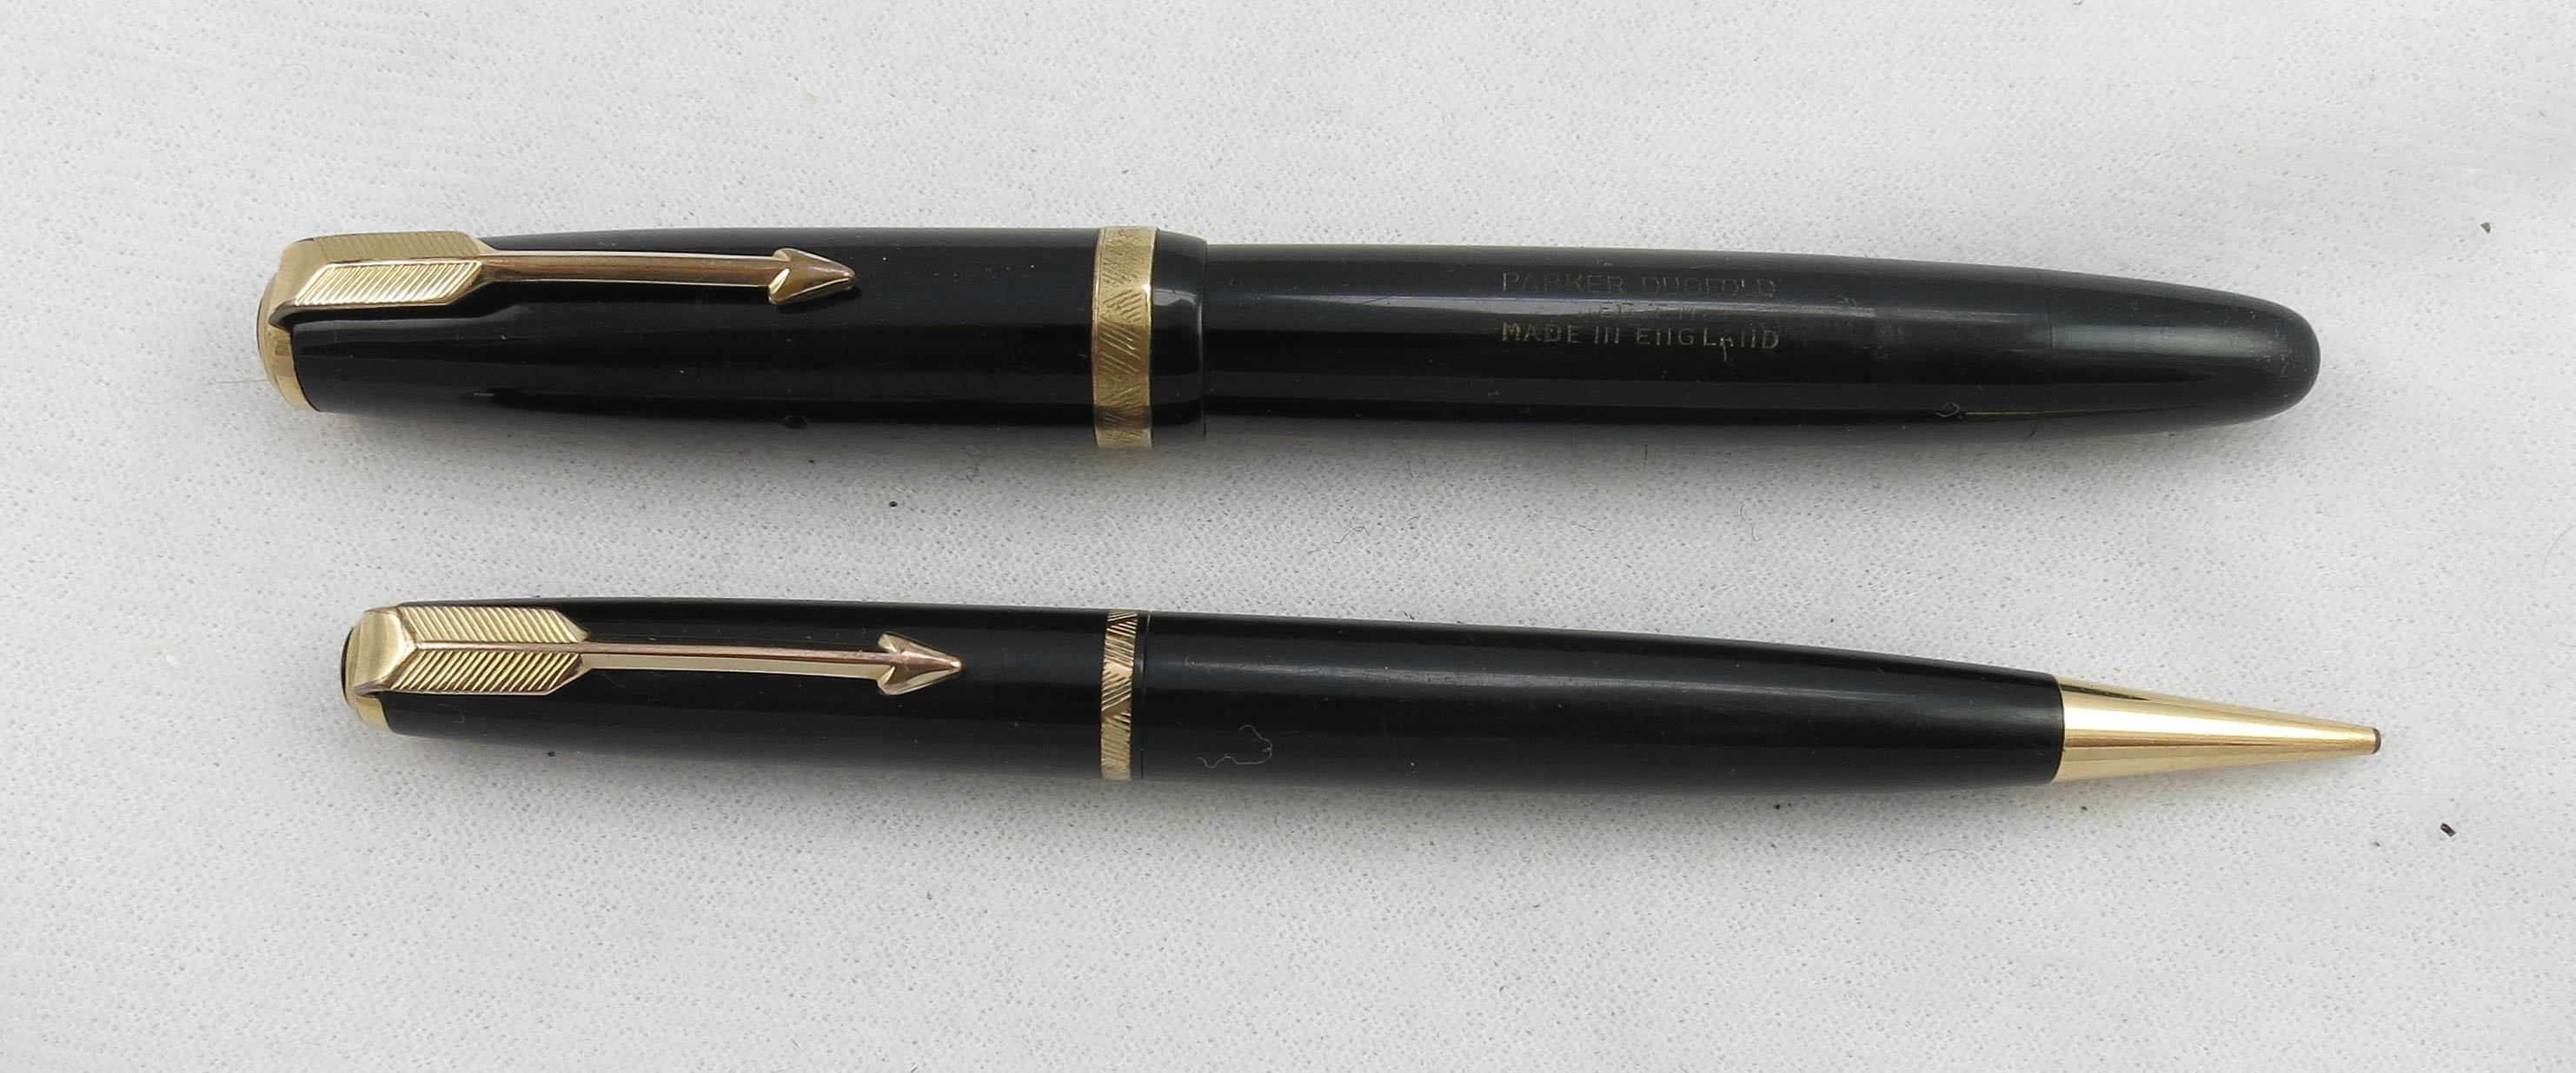 English Duofold Pen & Pencil Set (SB520)